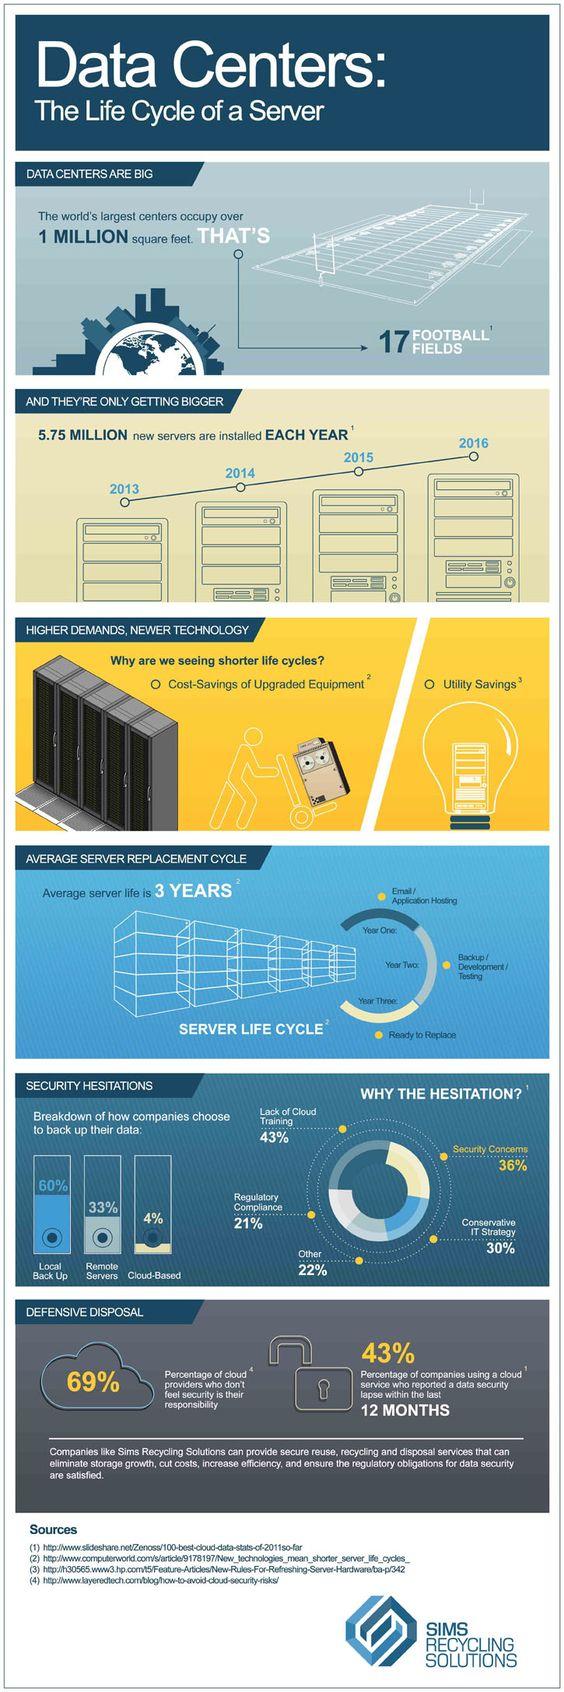 Data Center Infographic: Life Cycle of a Server